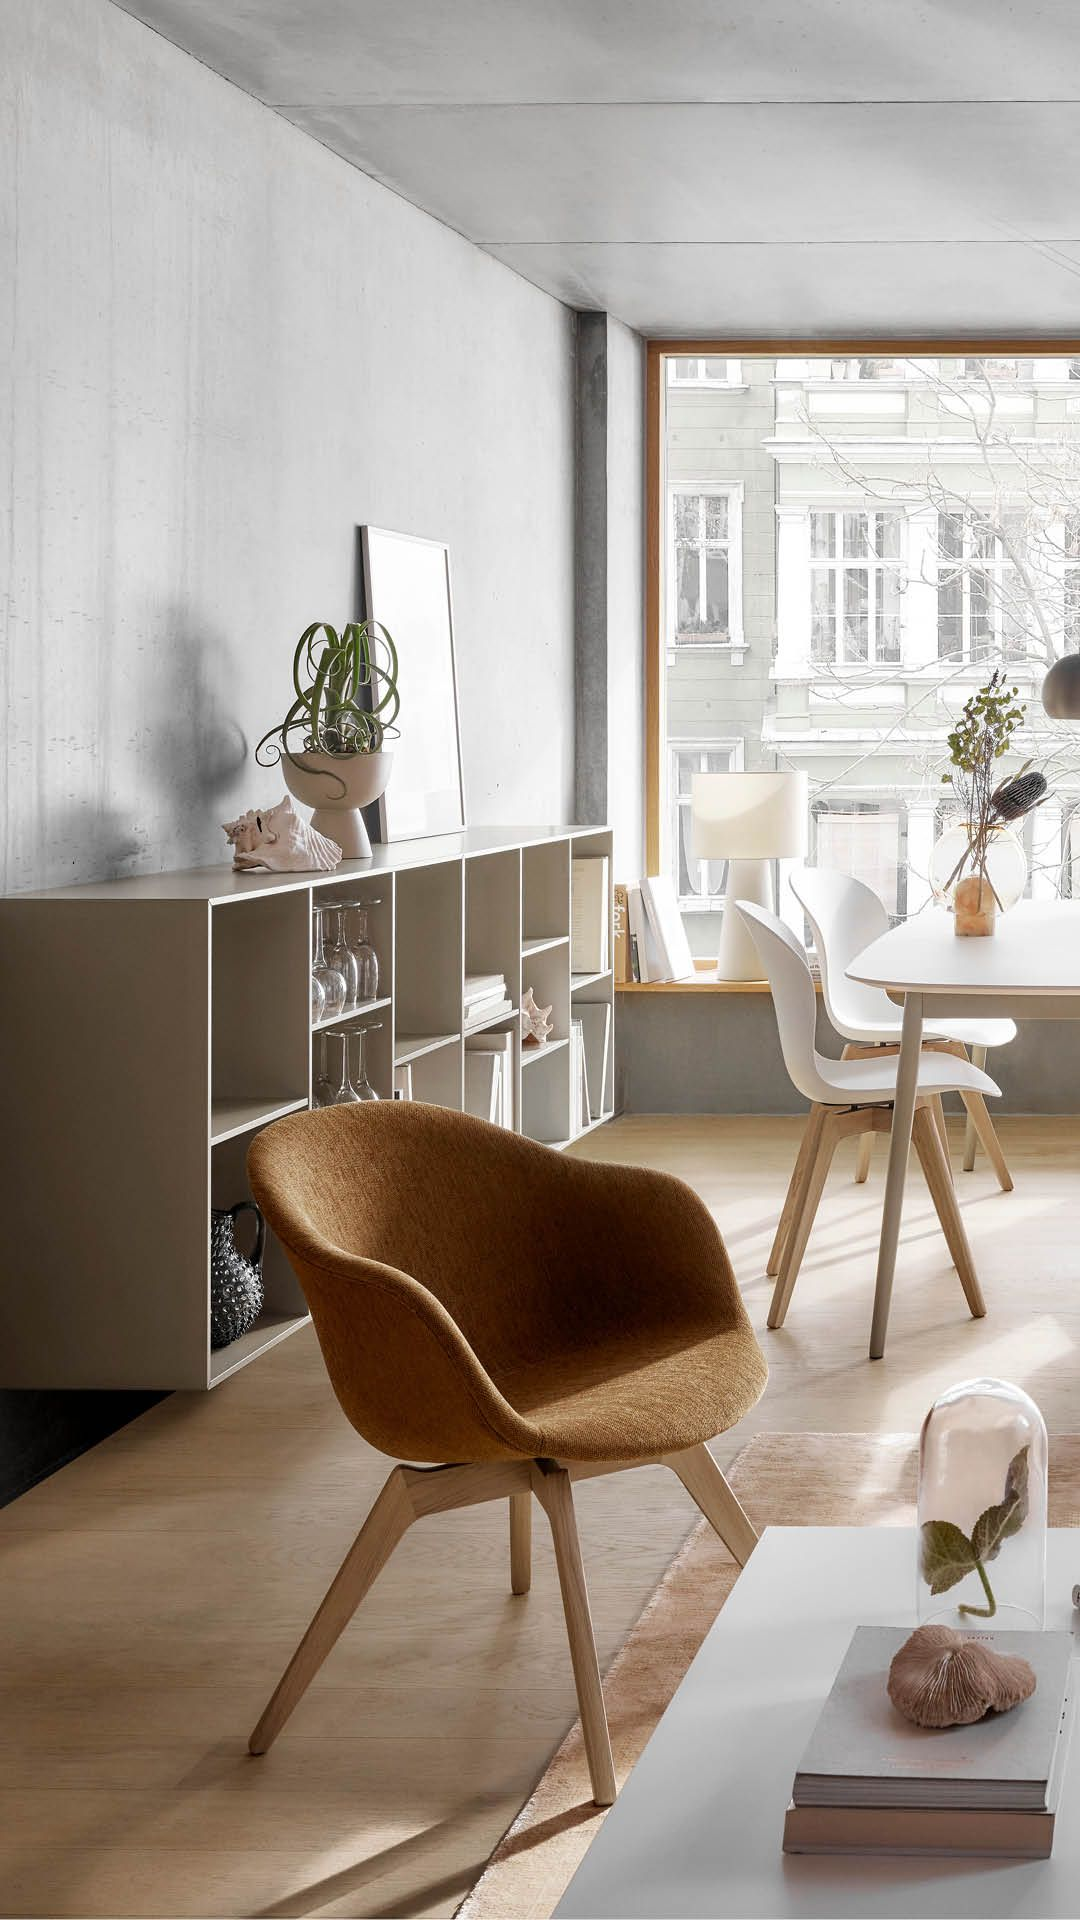 The Trends Of The Season In 2020 Interior Design Trends Tiny Furniture Living Design